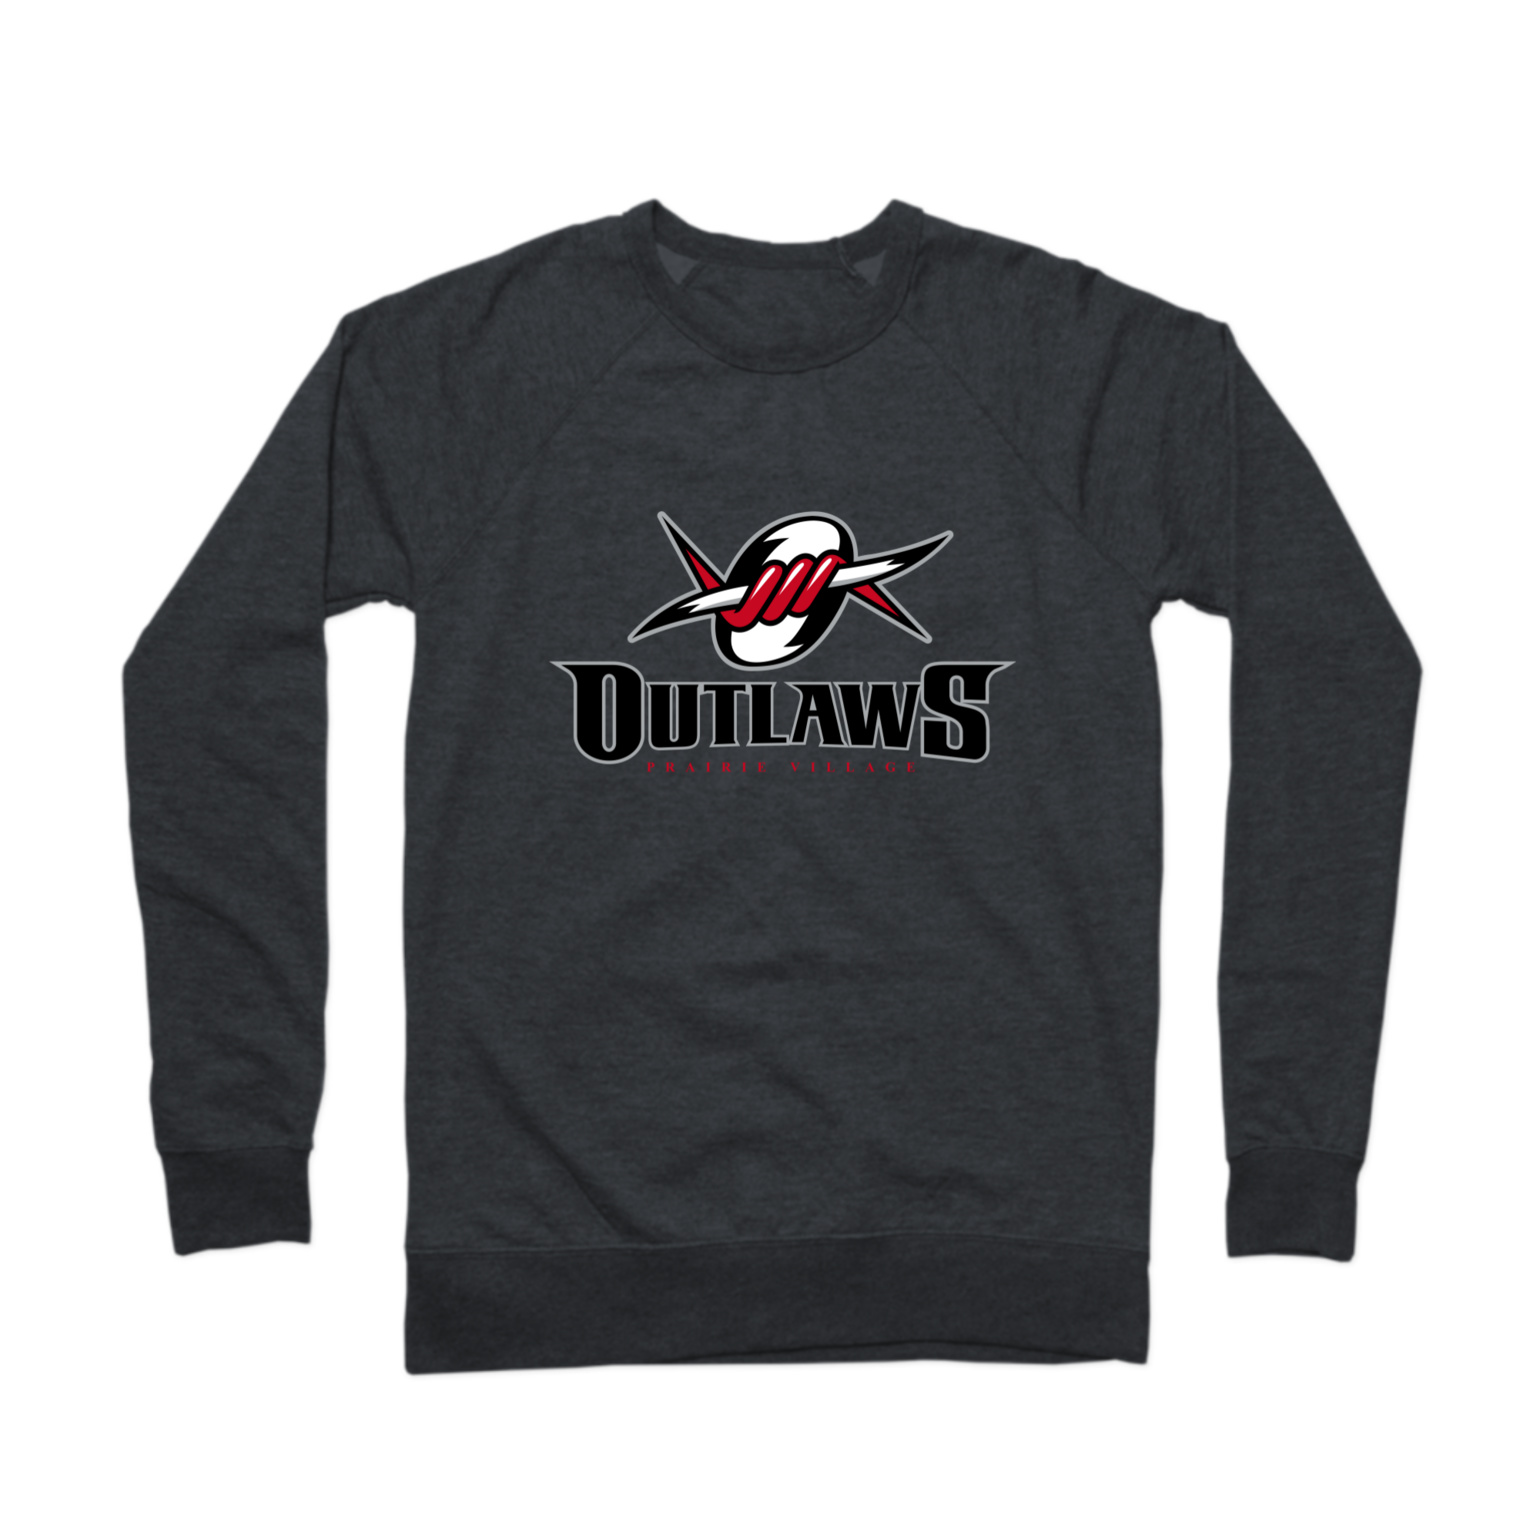 PV Outlaws Crewneck Sweatshirt